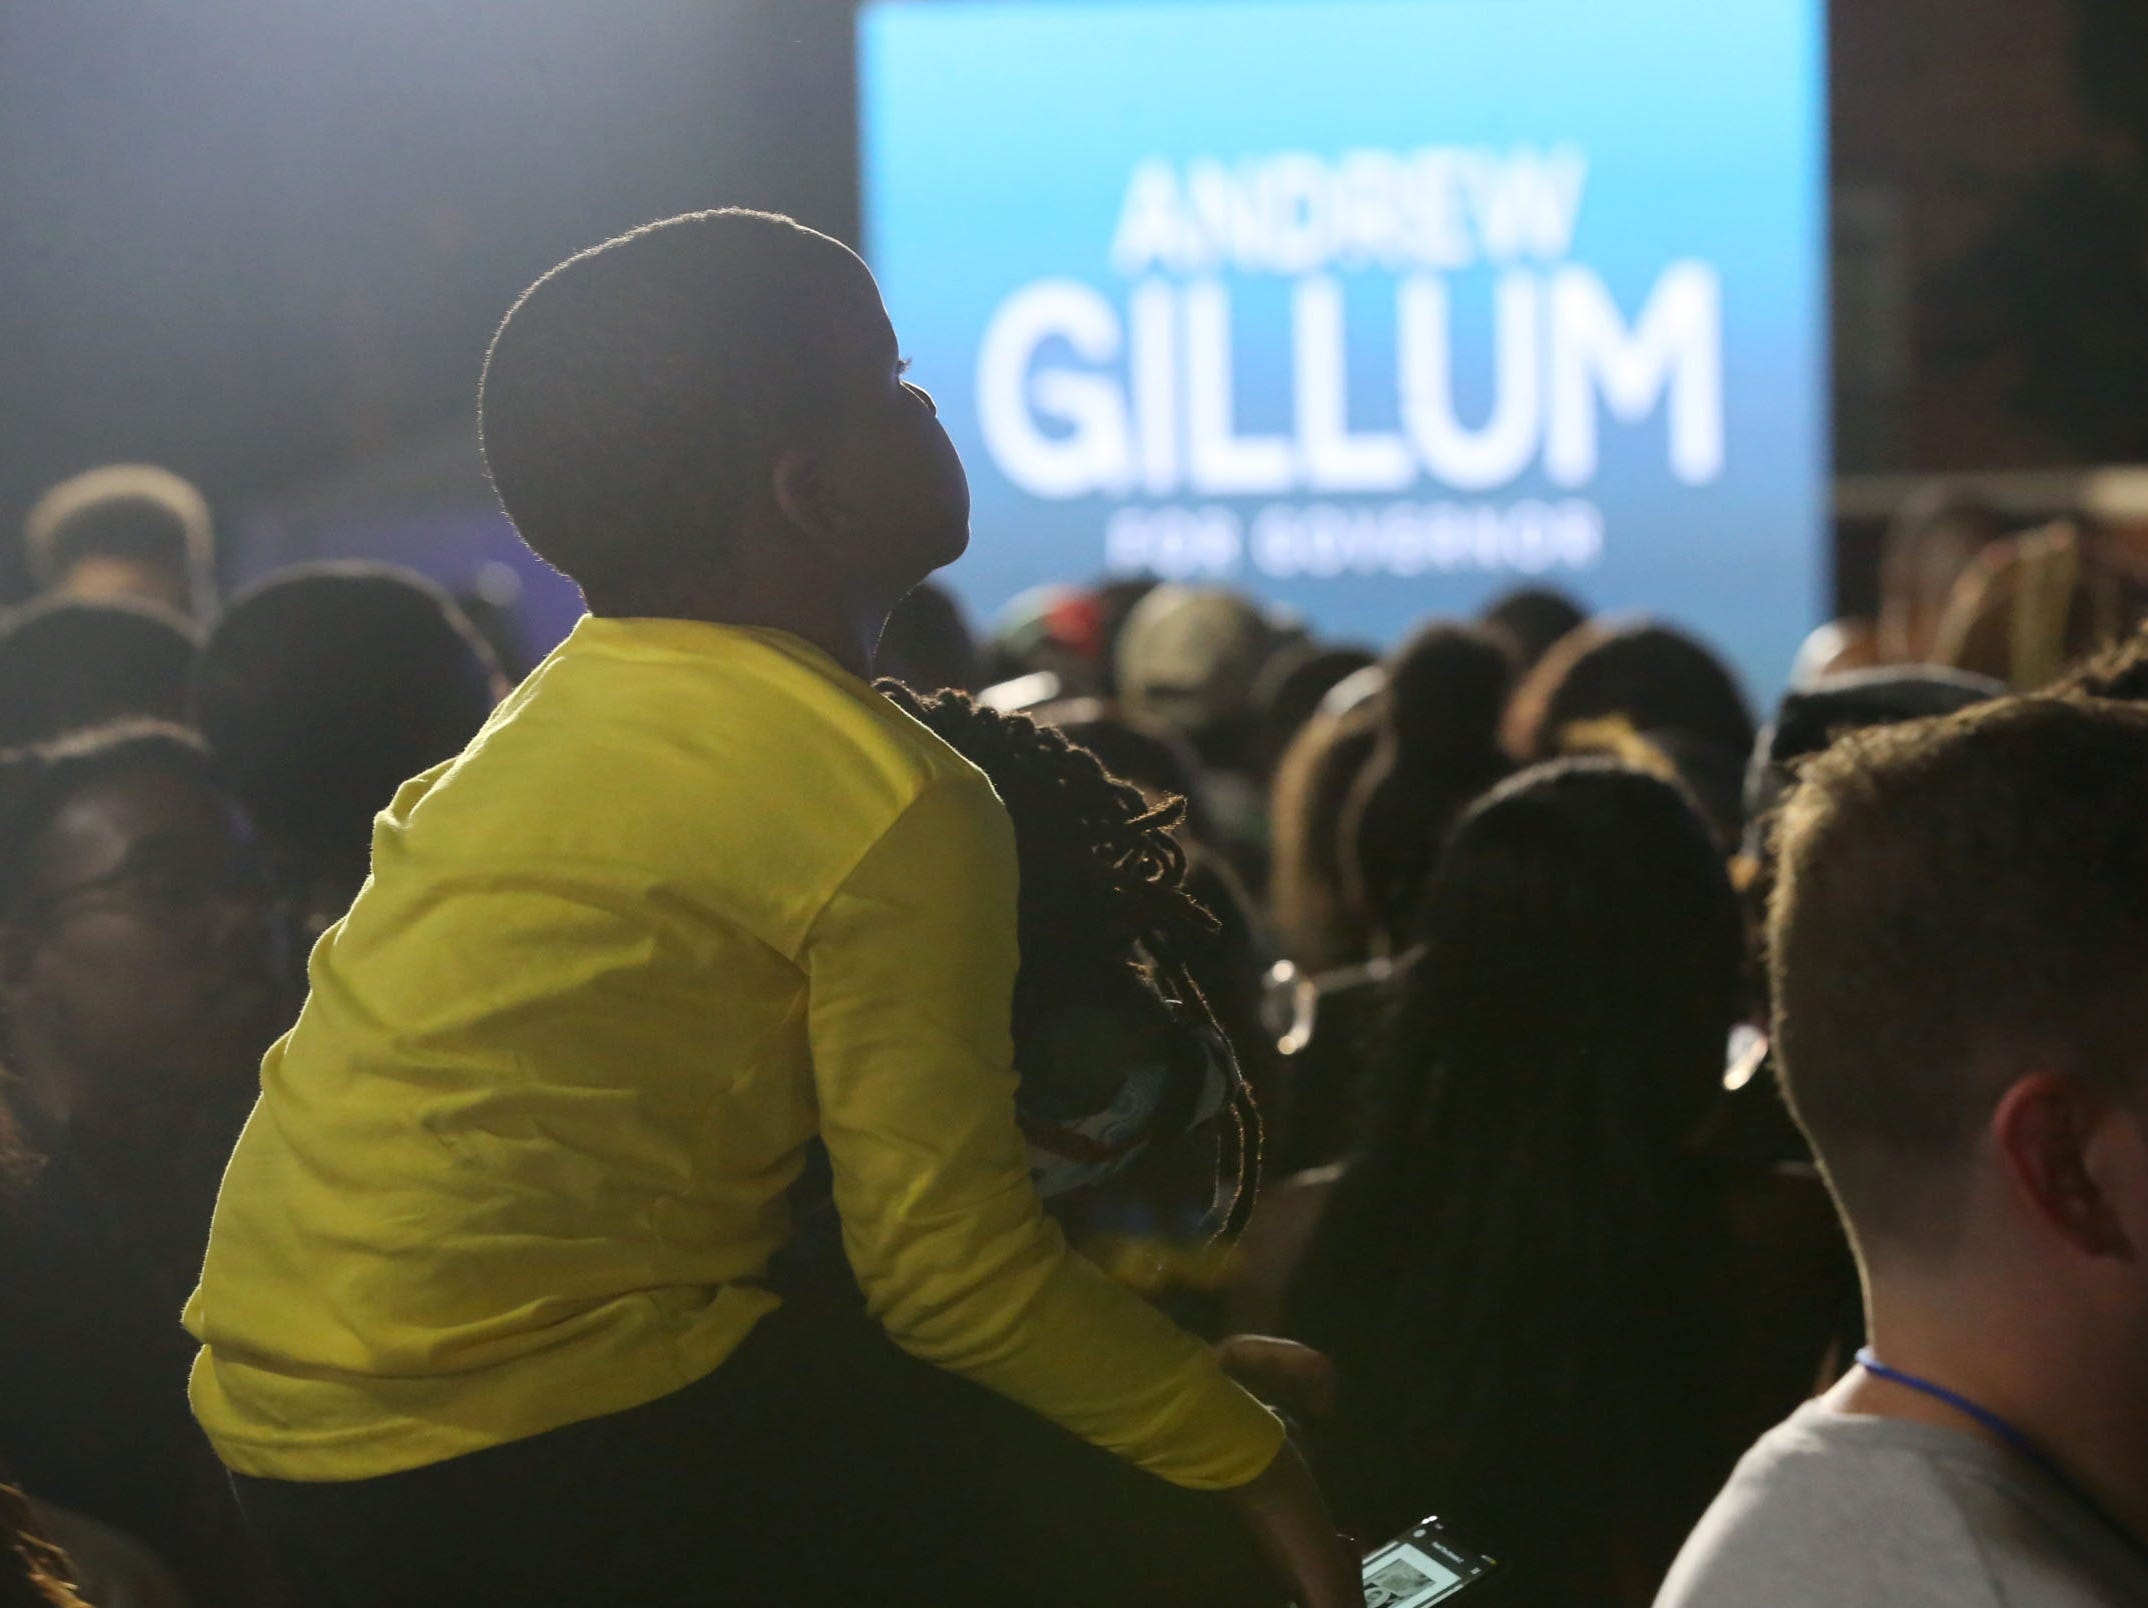 Spirits are high and supporters of Andrew Gillum show off their front row seat while at Gillum's watch party outside Lee Hall on the Florida A&M campus, on Election night, Tuesday, Nov. 6, 2018.